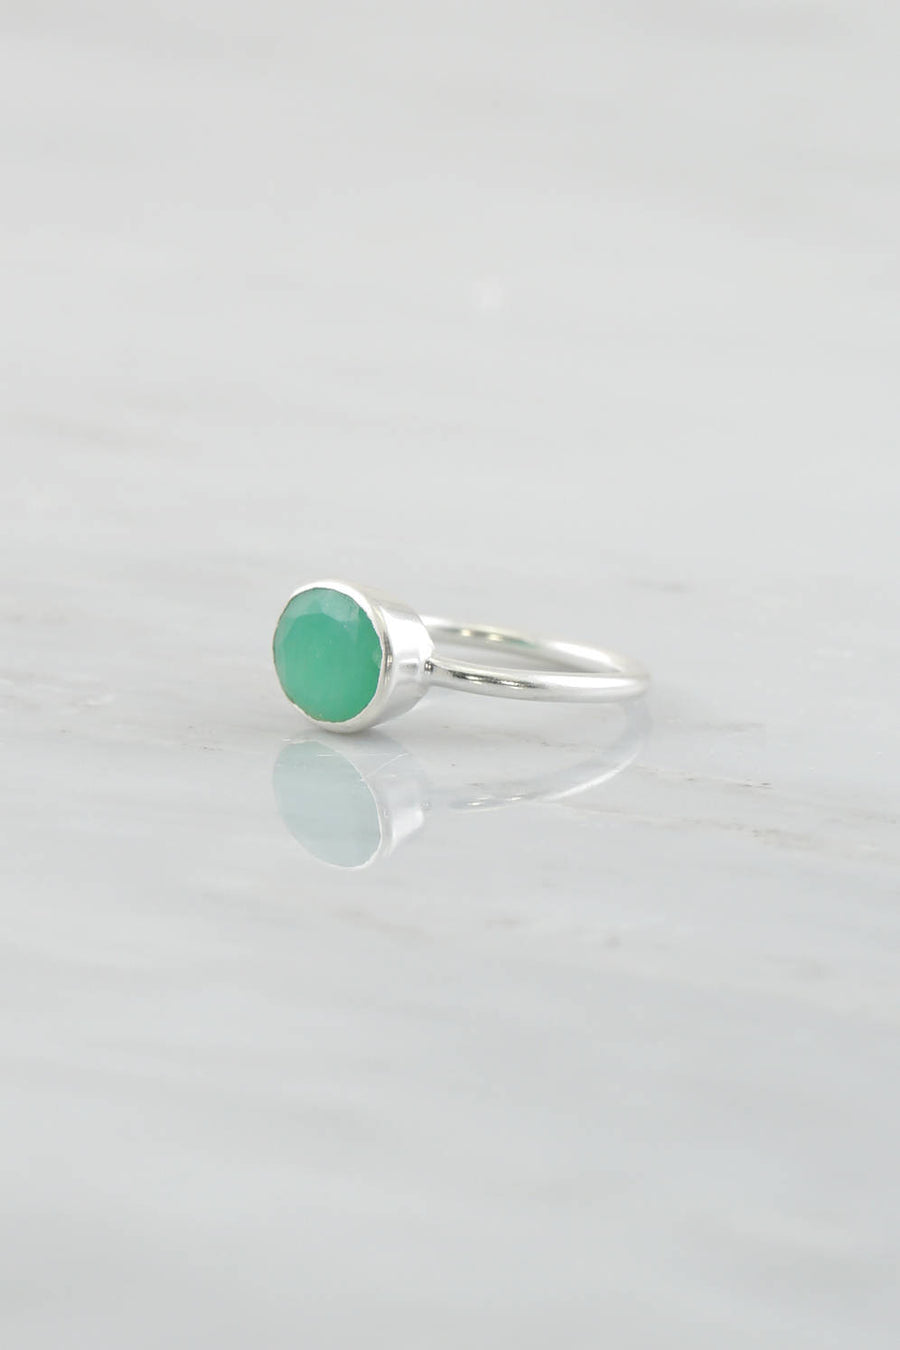 Gemstone rings, Chrysoprase Ring, Silver Gemstone Ring, Stackable Ring, Gold Ring, Oval Ring, Green Gemstone Ring, Faceted Ring